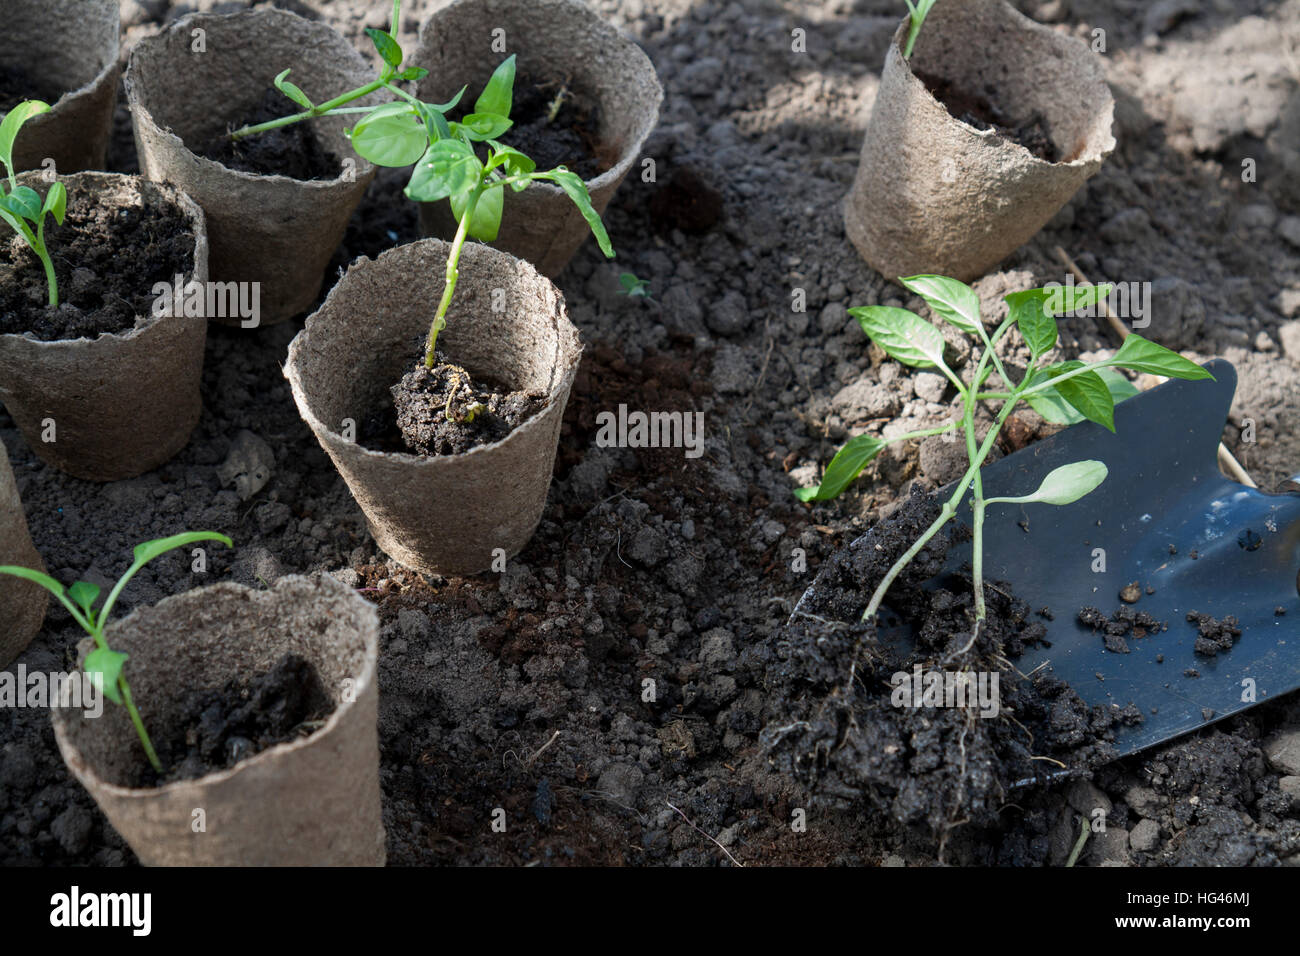 Planting young peppers seedlings in peat pots on soil background. Agriculture homegrown food vegetables, sustainable - Stock Image